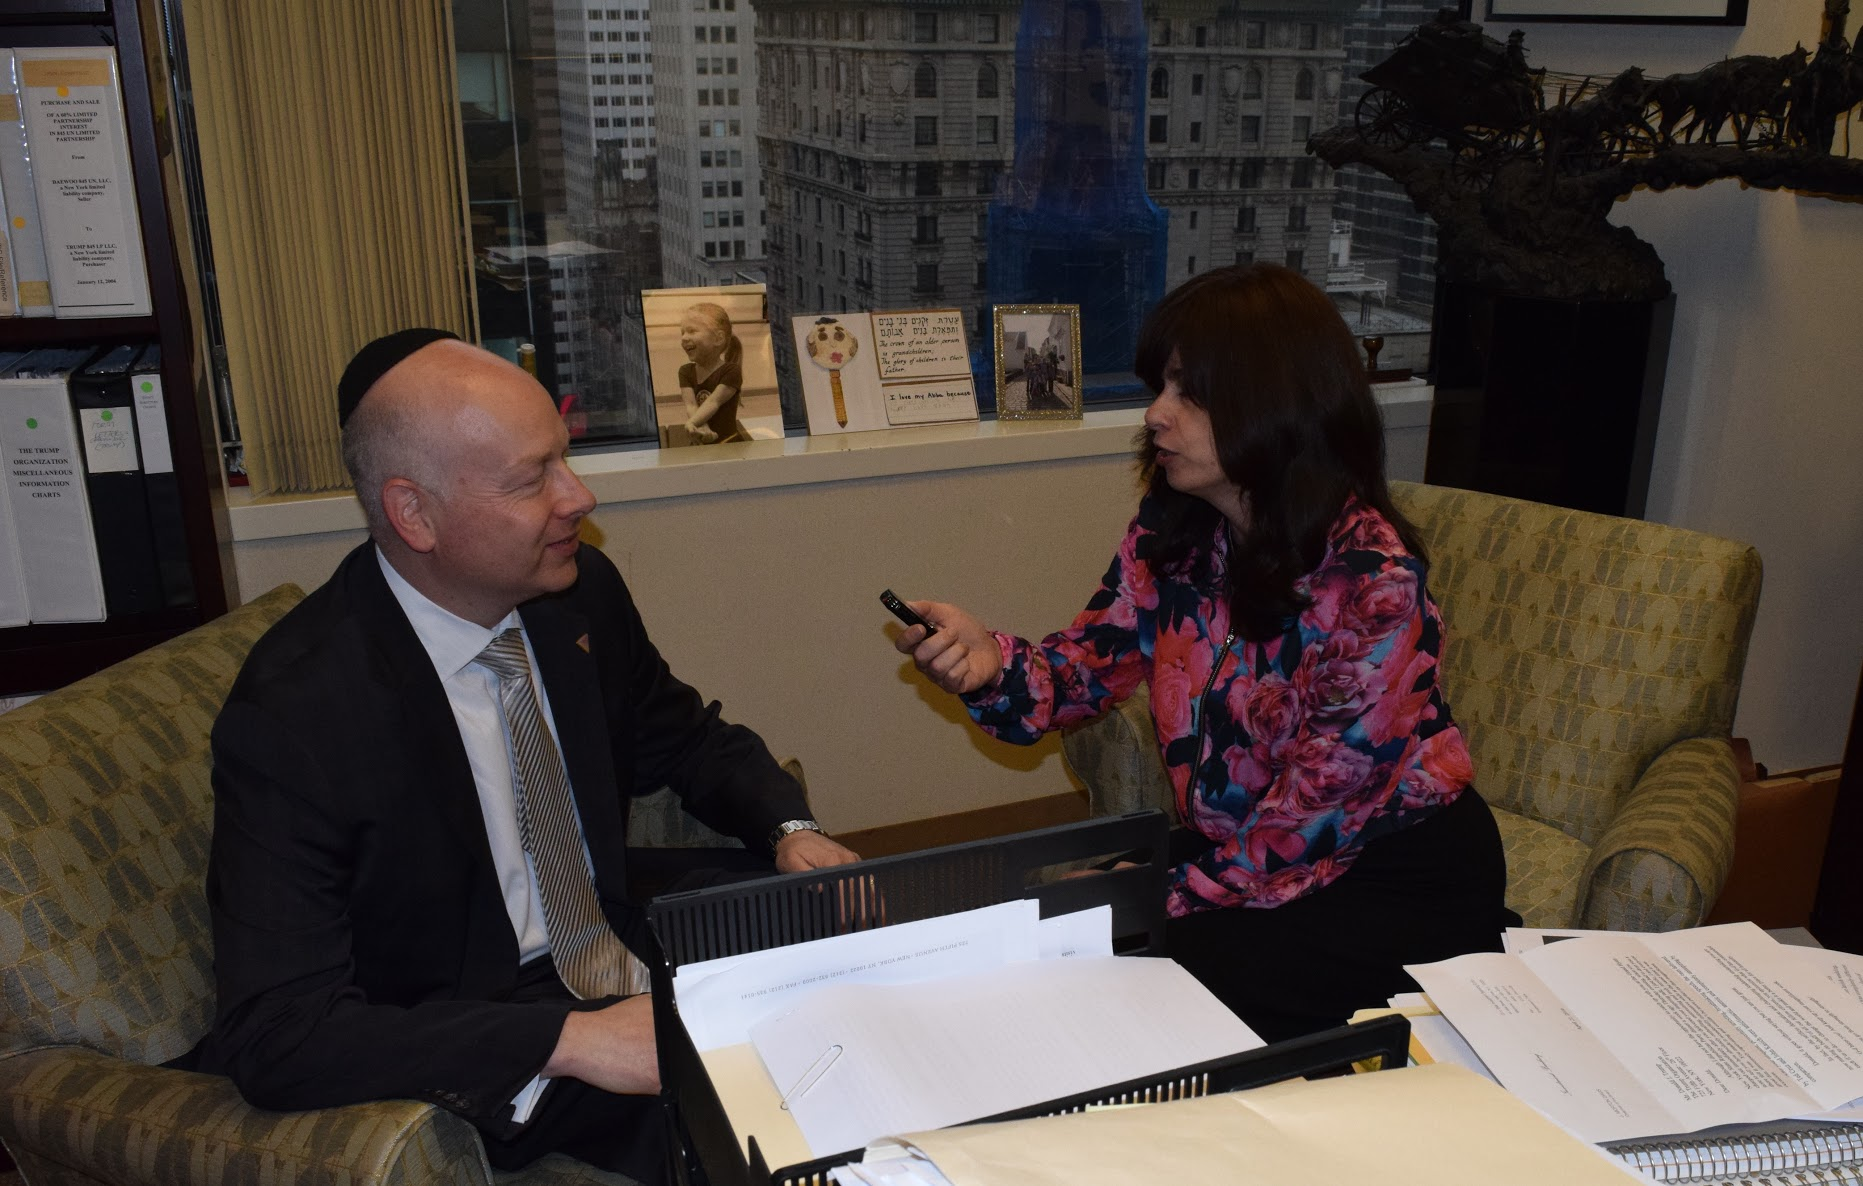 new york ny trump s orthodox jewish lawyer describes his boss vin news associate editor sandy eller in interview jason greenblatt at the trump tower in